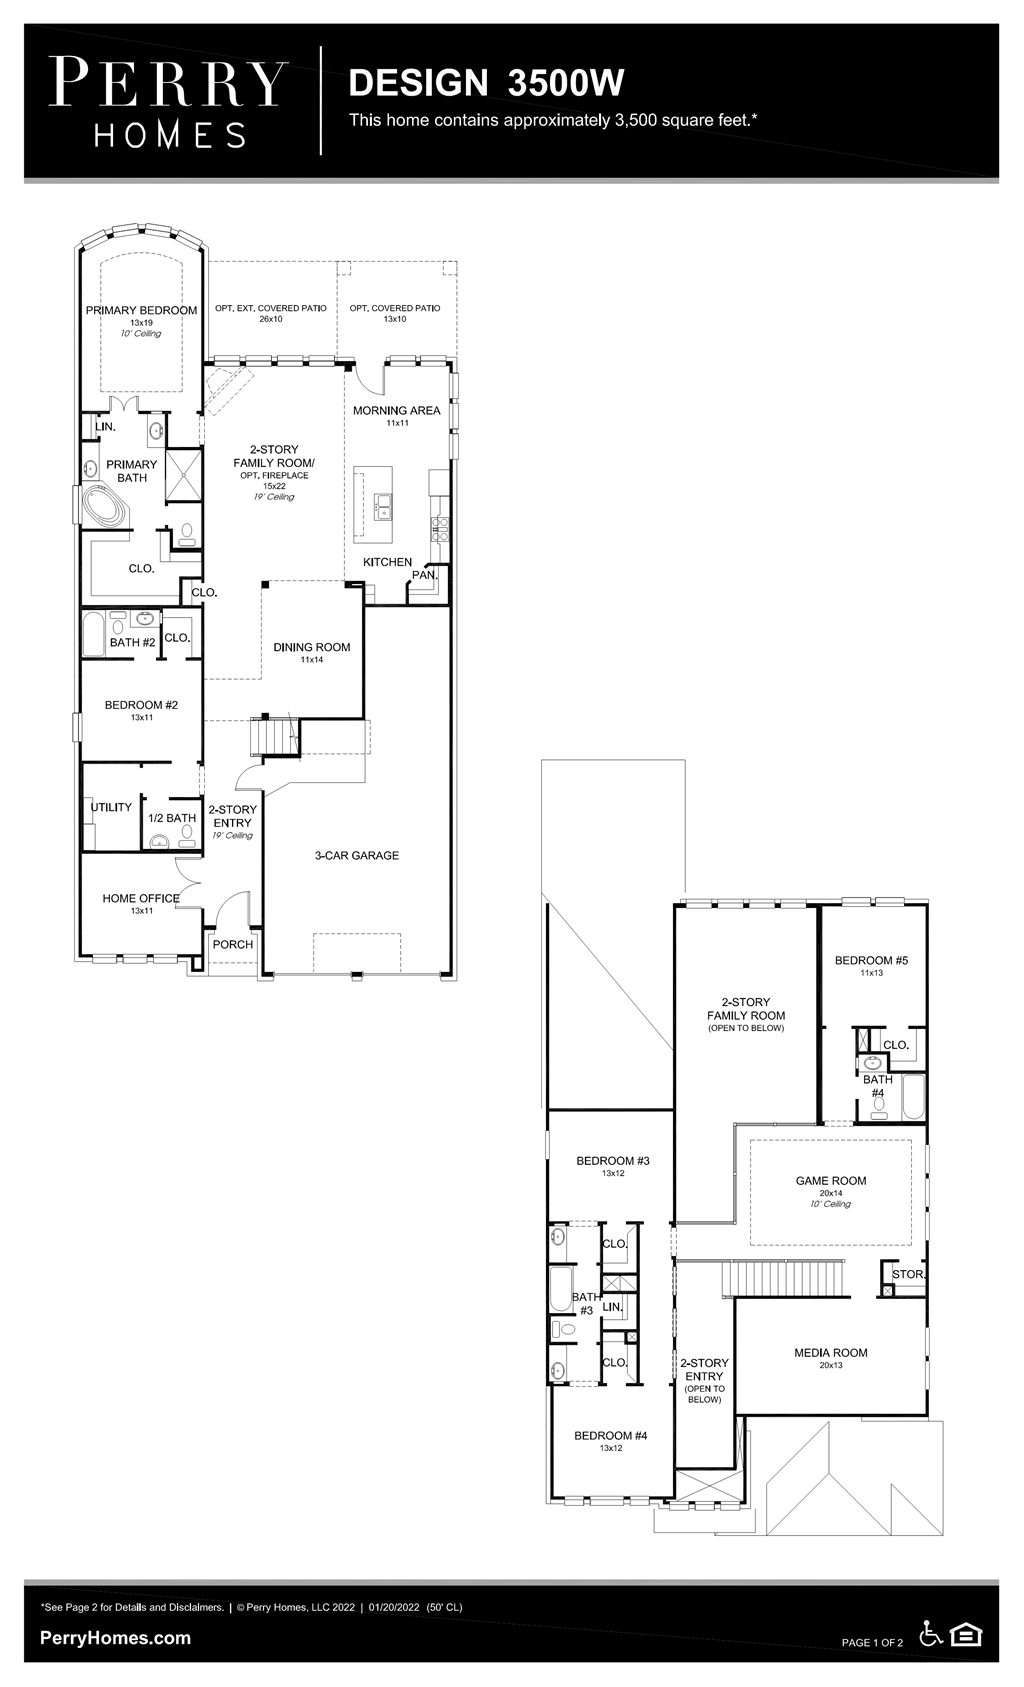 Floor Plan for 3500W